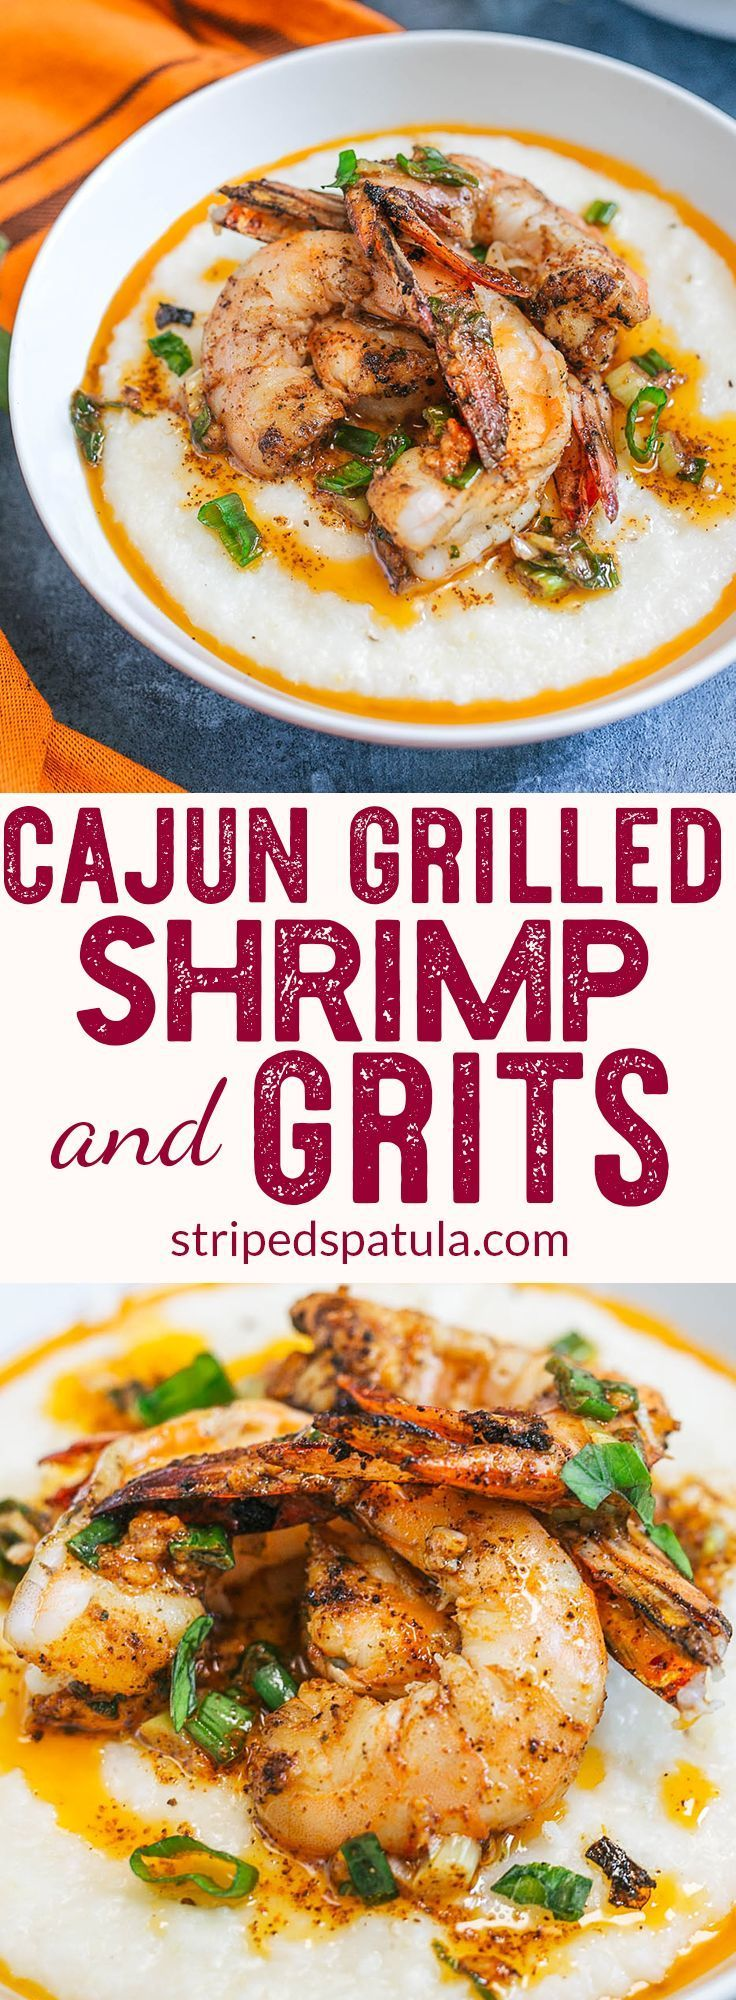 Grilled Cajun Shrimp and Grits #pescatarianrecipes